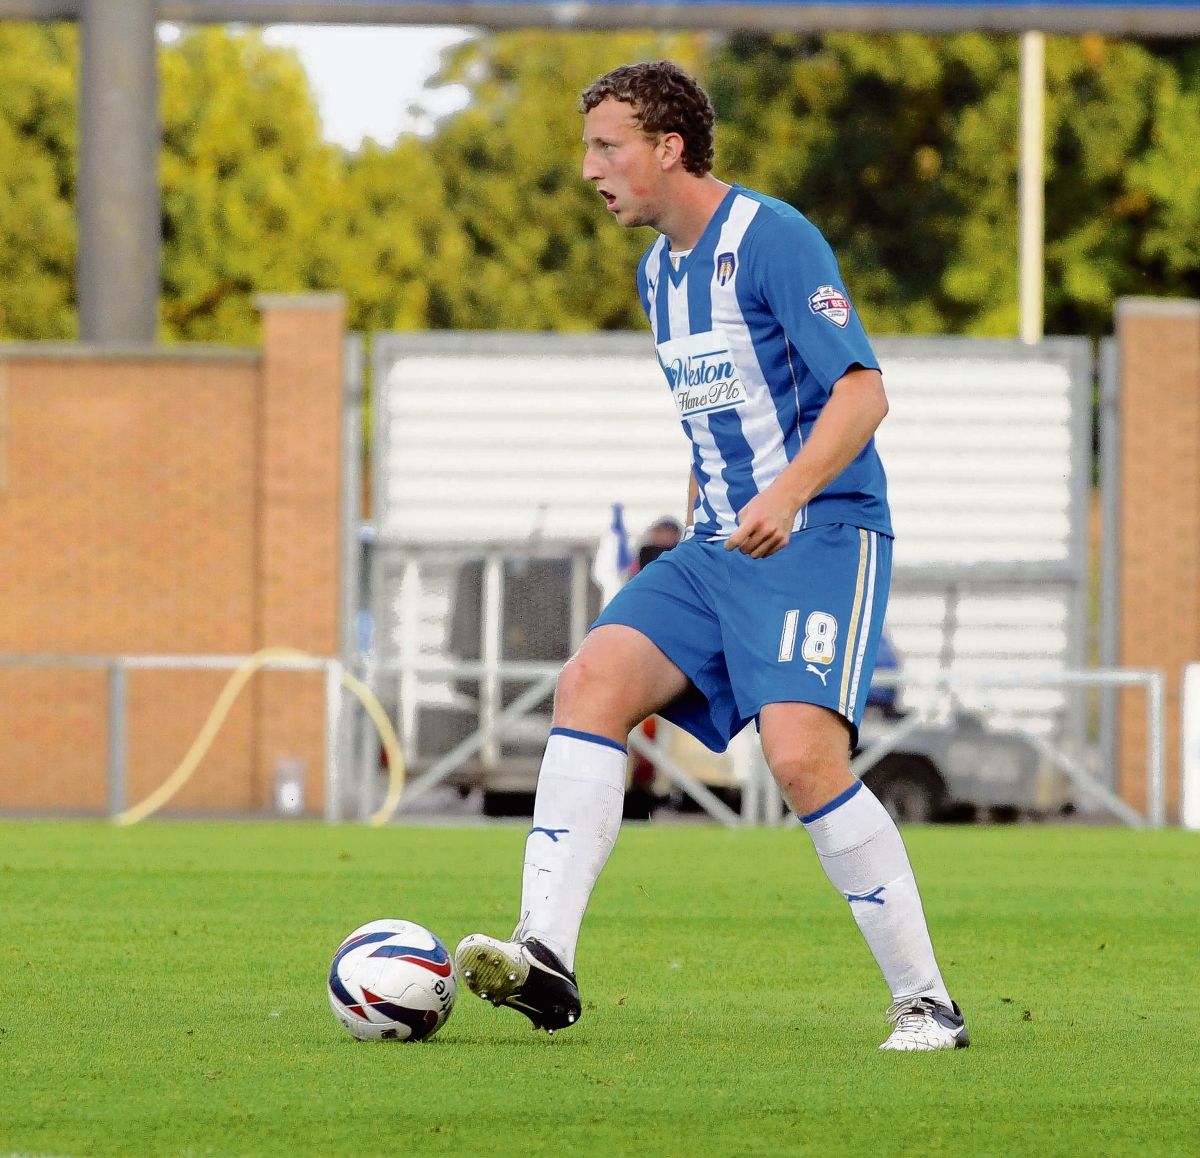 Reward - Tom Eastman won Colchester United's Player of the Year and Players' Player of the Year titles at the club's end of season dinner.